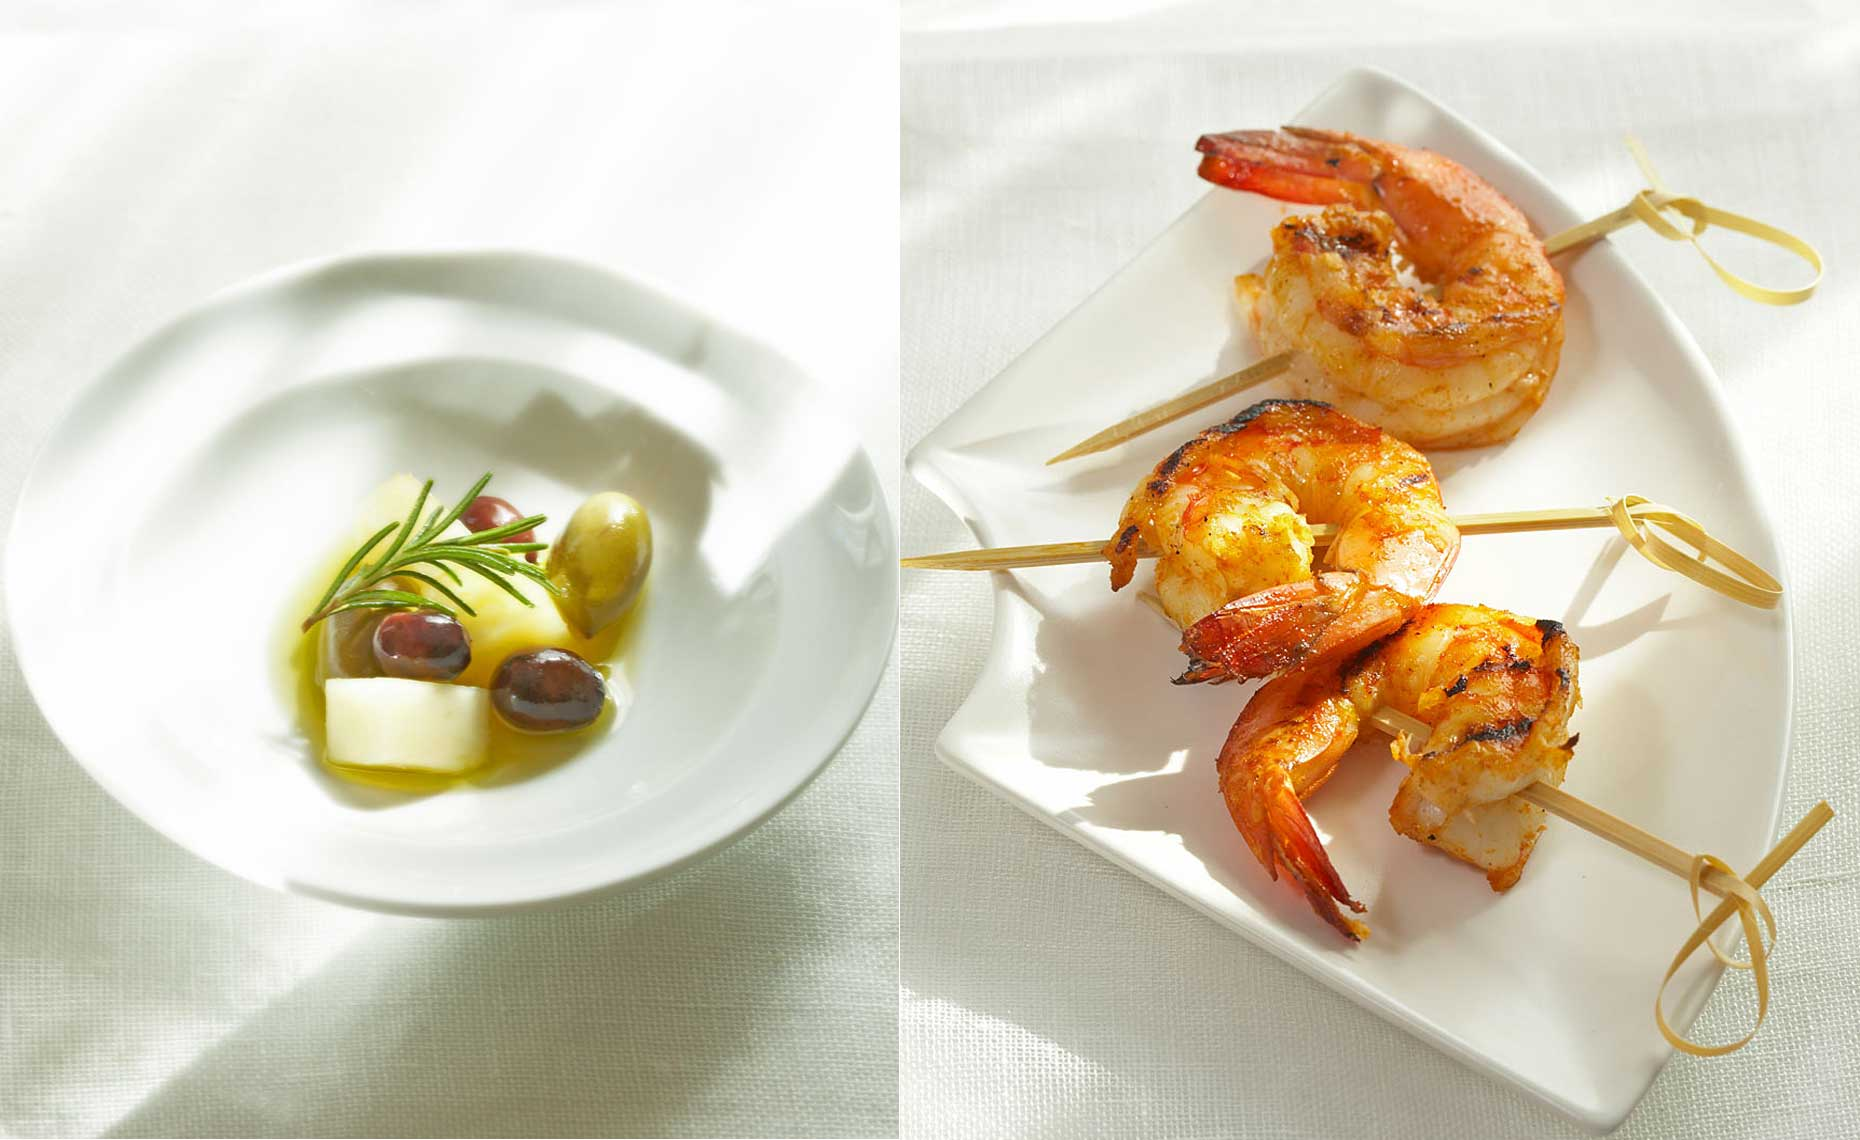 ShrimpOliveAppetizer1.jpg